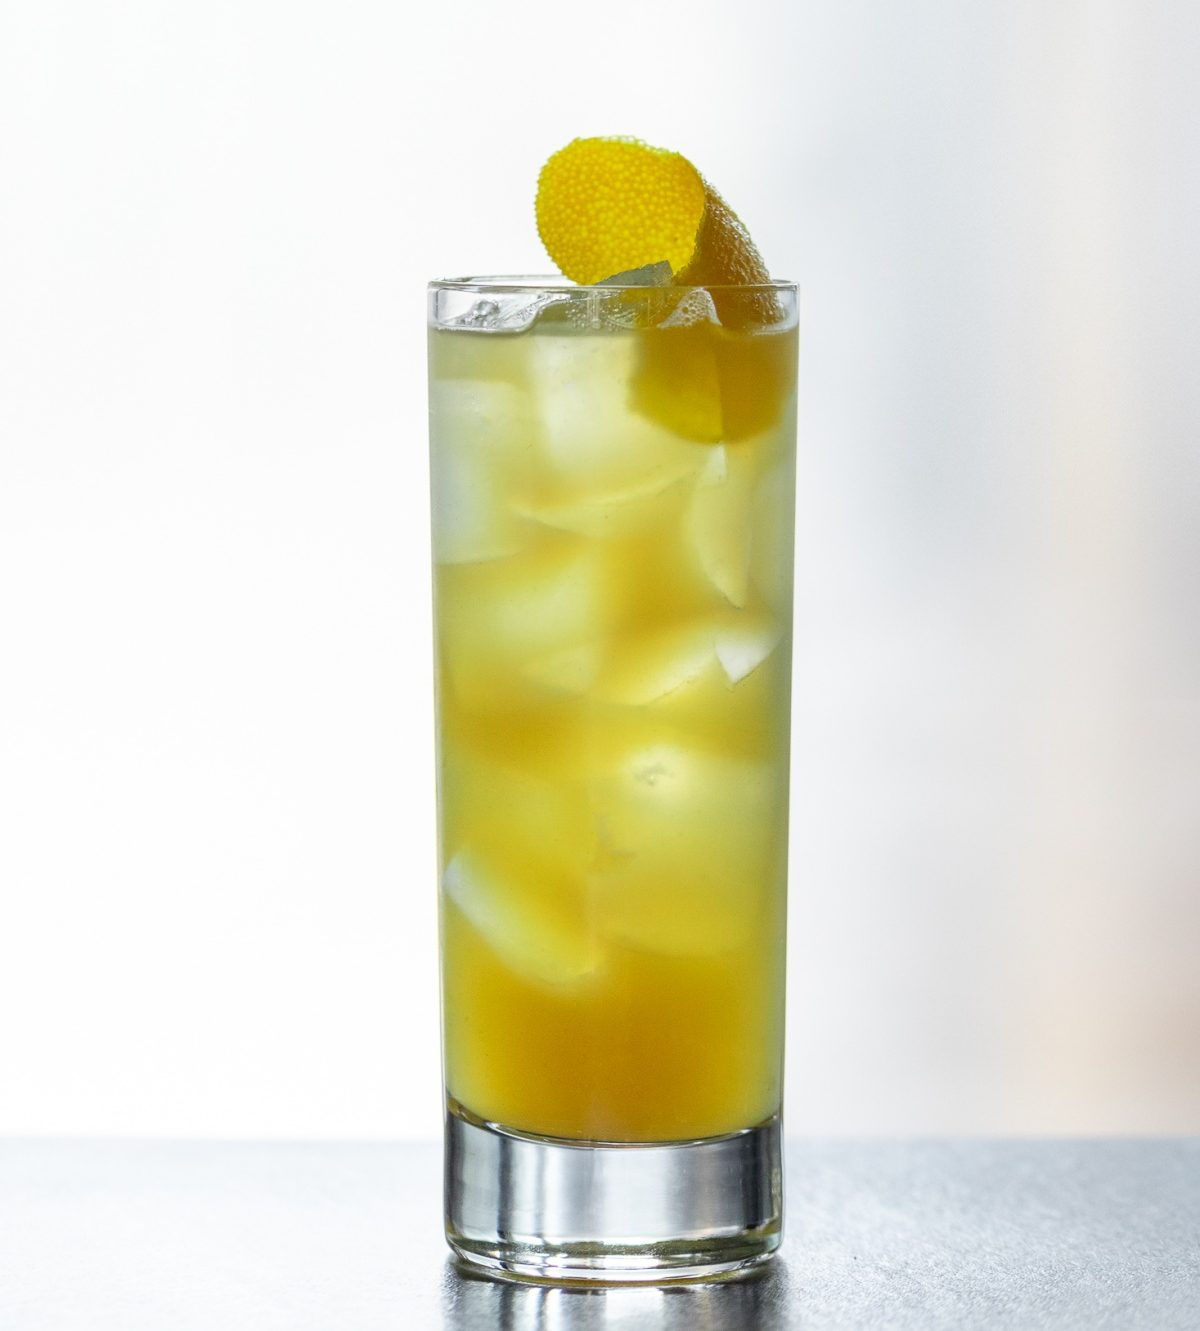 09-2019_OTOTO_Cocktail_Final Images_Web-Res_05